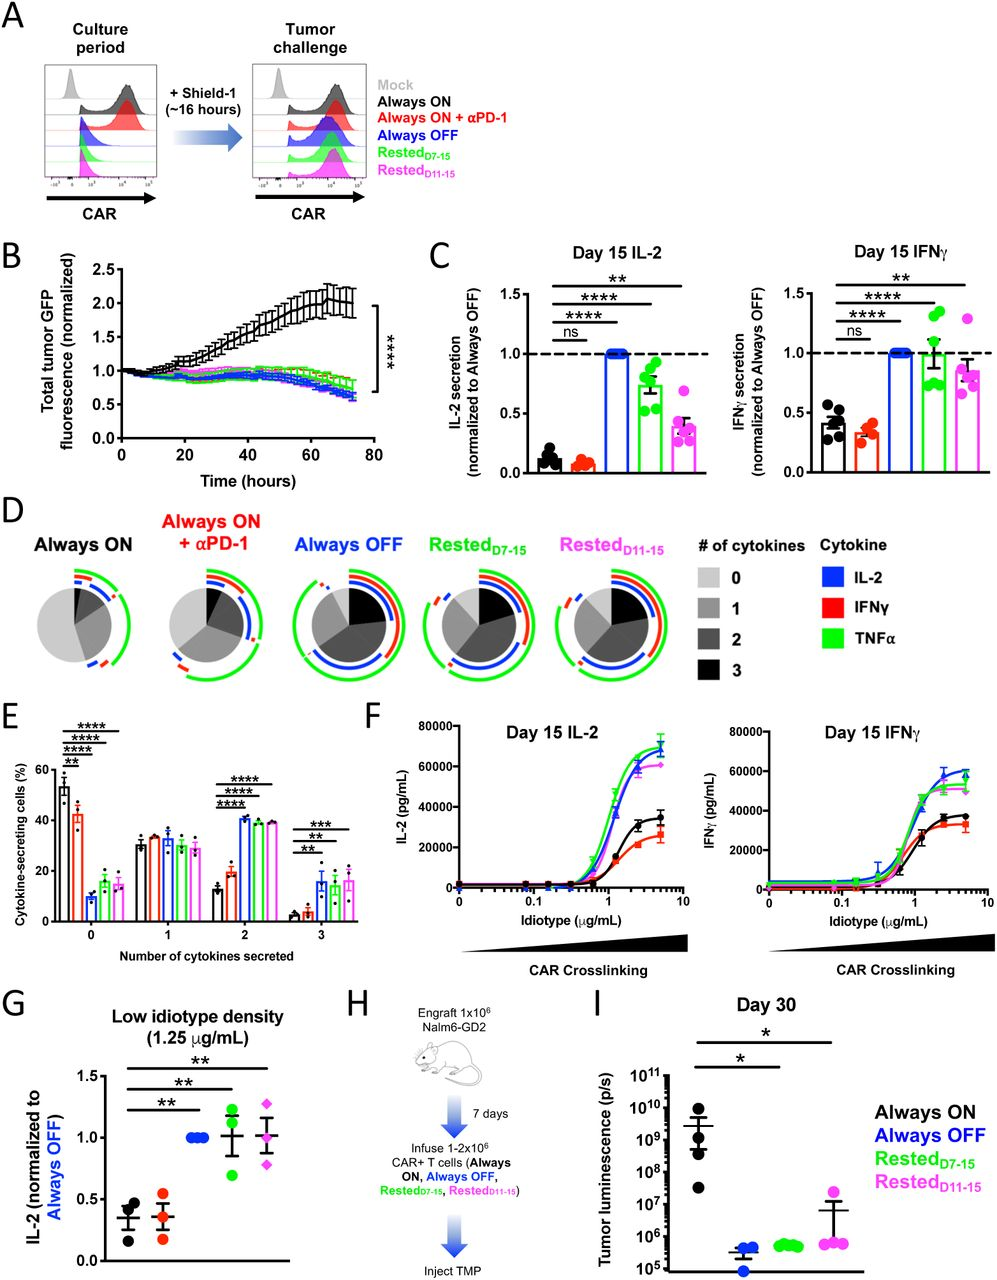 Transient rest reinvigorates exhausted CAR-T cells and improves anti-tumor function. A) CAR expression was normalized across all HA.28z.FKBP-expressing cells ( Figure 4A ) by adding shield-1 to cultures approximately 16 hours prior to in vitro tumor challenge. B) D15 incucyte assay shows that transient rest and α PD-1 enhances cytotoxicity in response to 143B-GL osteosarcoma (1:8 E:T, normalized to t=0) compared to exhausted Always ON controls. Error bars represent mean ± SD of 3 triplicate wells from one representative donor (n=3 individual donors). C) D15 co-culture assay with Nalm6-GD2 leukemia demonstrates that transient rest, but not α PD-1, augments IL-2 and IFN γ secretion. Error bars represent mean ± SEM of 4-6 individual donors. D-E) Intracellular cytokine staining and flow cytometry analyses of CD8+ CAR+ T cells demonstrate that rest reduces the frequency of non-responsive cells and increases the frequency of polyfunctional cells. SPICE analysis from 1 representative donor was conducted in (D). Error bars in (E) represent mean ± SEM of 3 individual donors. F-G) CAR-T cells were crosslinked with immobilized 1A7 anti-CAR idiotype antibody for 24 hours. (F) Non-linear dose-response curves demonstrate that T cell rest, but not PD-1 blockade, augments IL-2 and IFN γ secretion in response to both low and high idiotype densities. Error bars represent mean ± SD of 3 triplicate wells from one representative donor (n=3 individual donors). (G) IL-2 secretion in response to low density (1.25 μ g/mL) anti-CAR idiotype was normalized to secretion levels from Always OFF cells. Error bars represent mean ± SEM of 3 individual donors. H-I) 1×10 6 Nalm6-GD2 leukemia cells were engrafted in mice on day 0 and 1-2×10 6 HA.28 ζ .ecDHFR CAR-T cells expanded for 15 days in vitro (as depicted in Figure 4A ) and were infused IV on day 7 post-engraftment. Mice were dosed with 200mg/kg TMP 6 days/week. (I) Bioluminescent imaging on day 30 post-engraftment demonstrates augmented contro